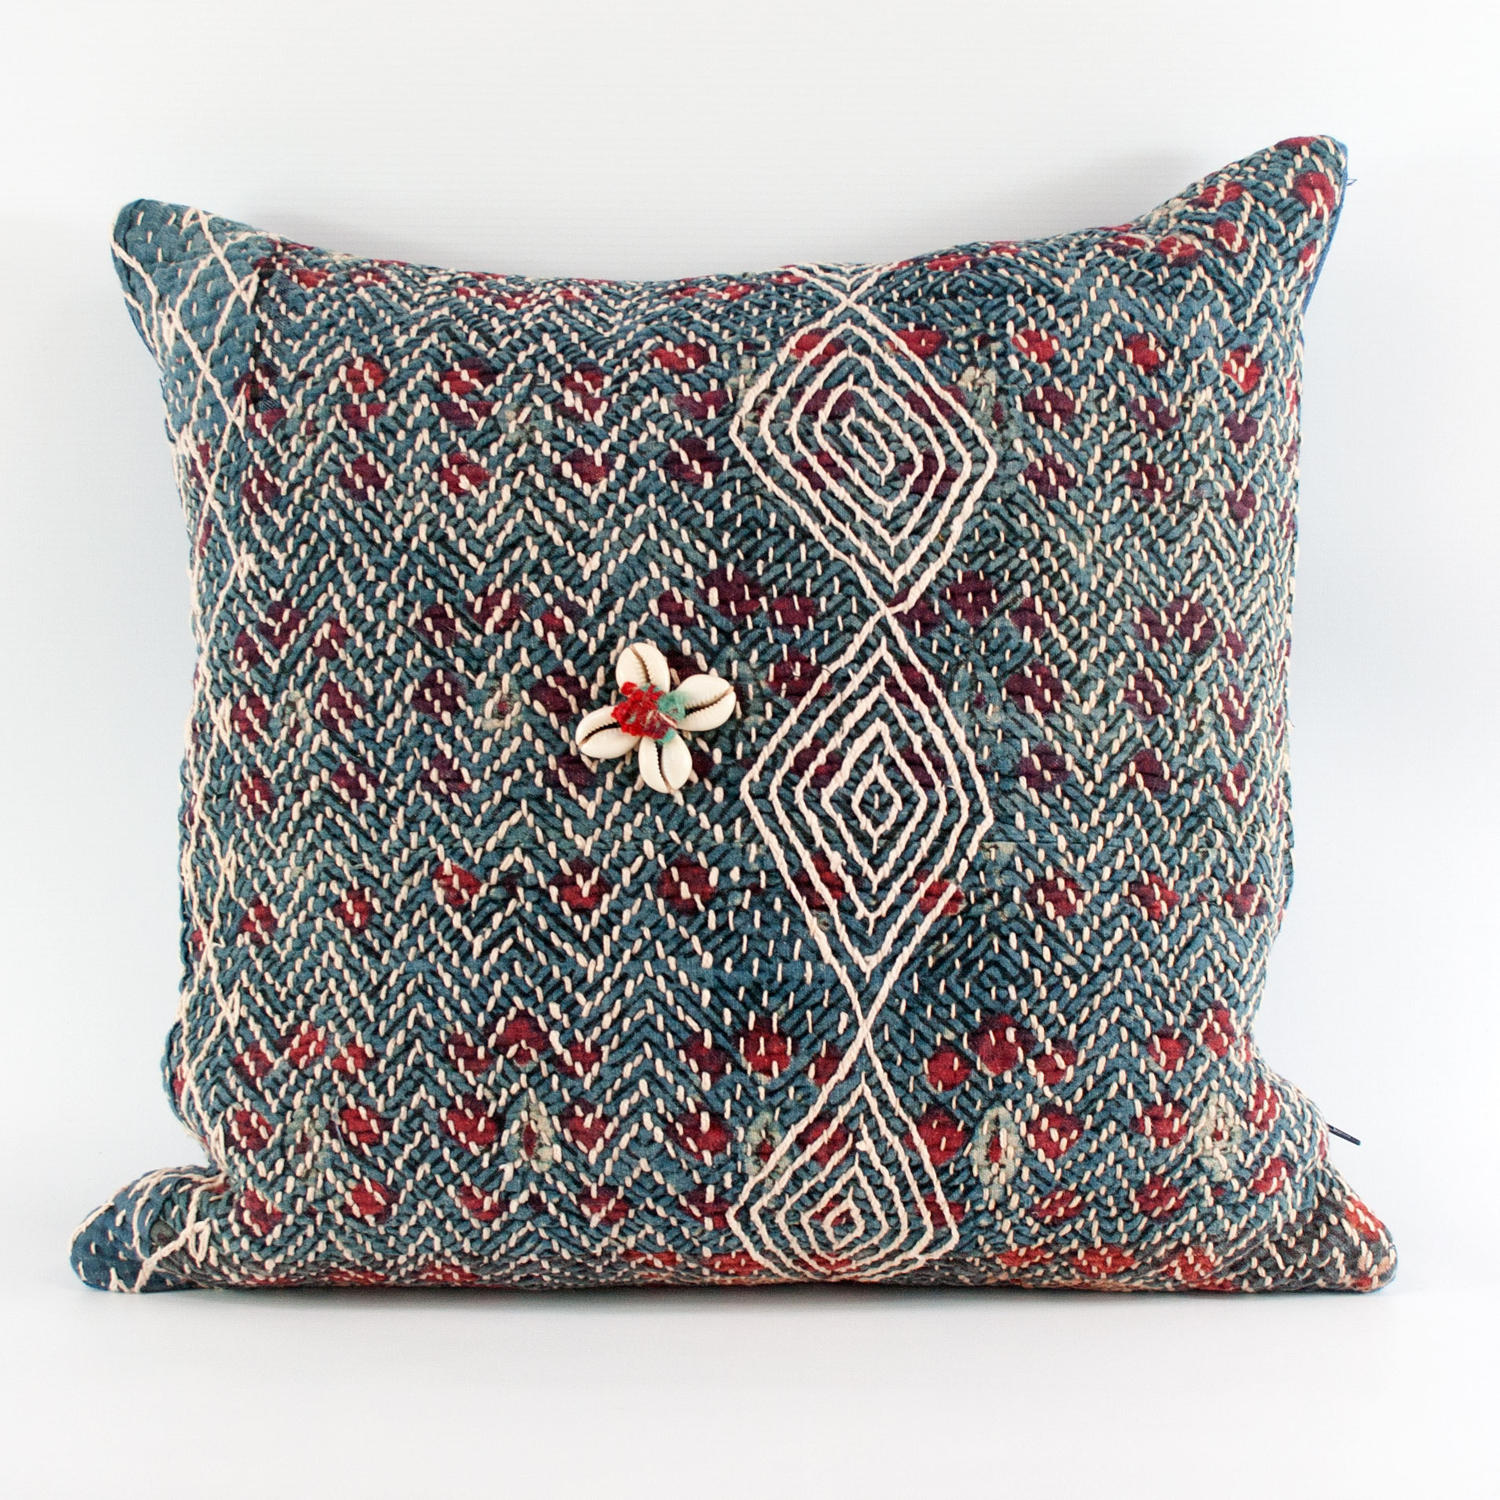 Banjara Cushions - Blue